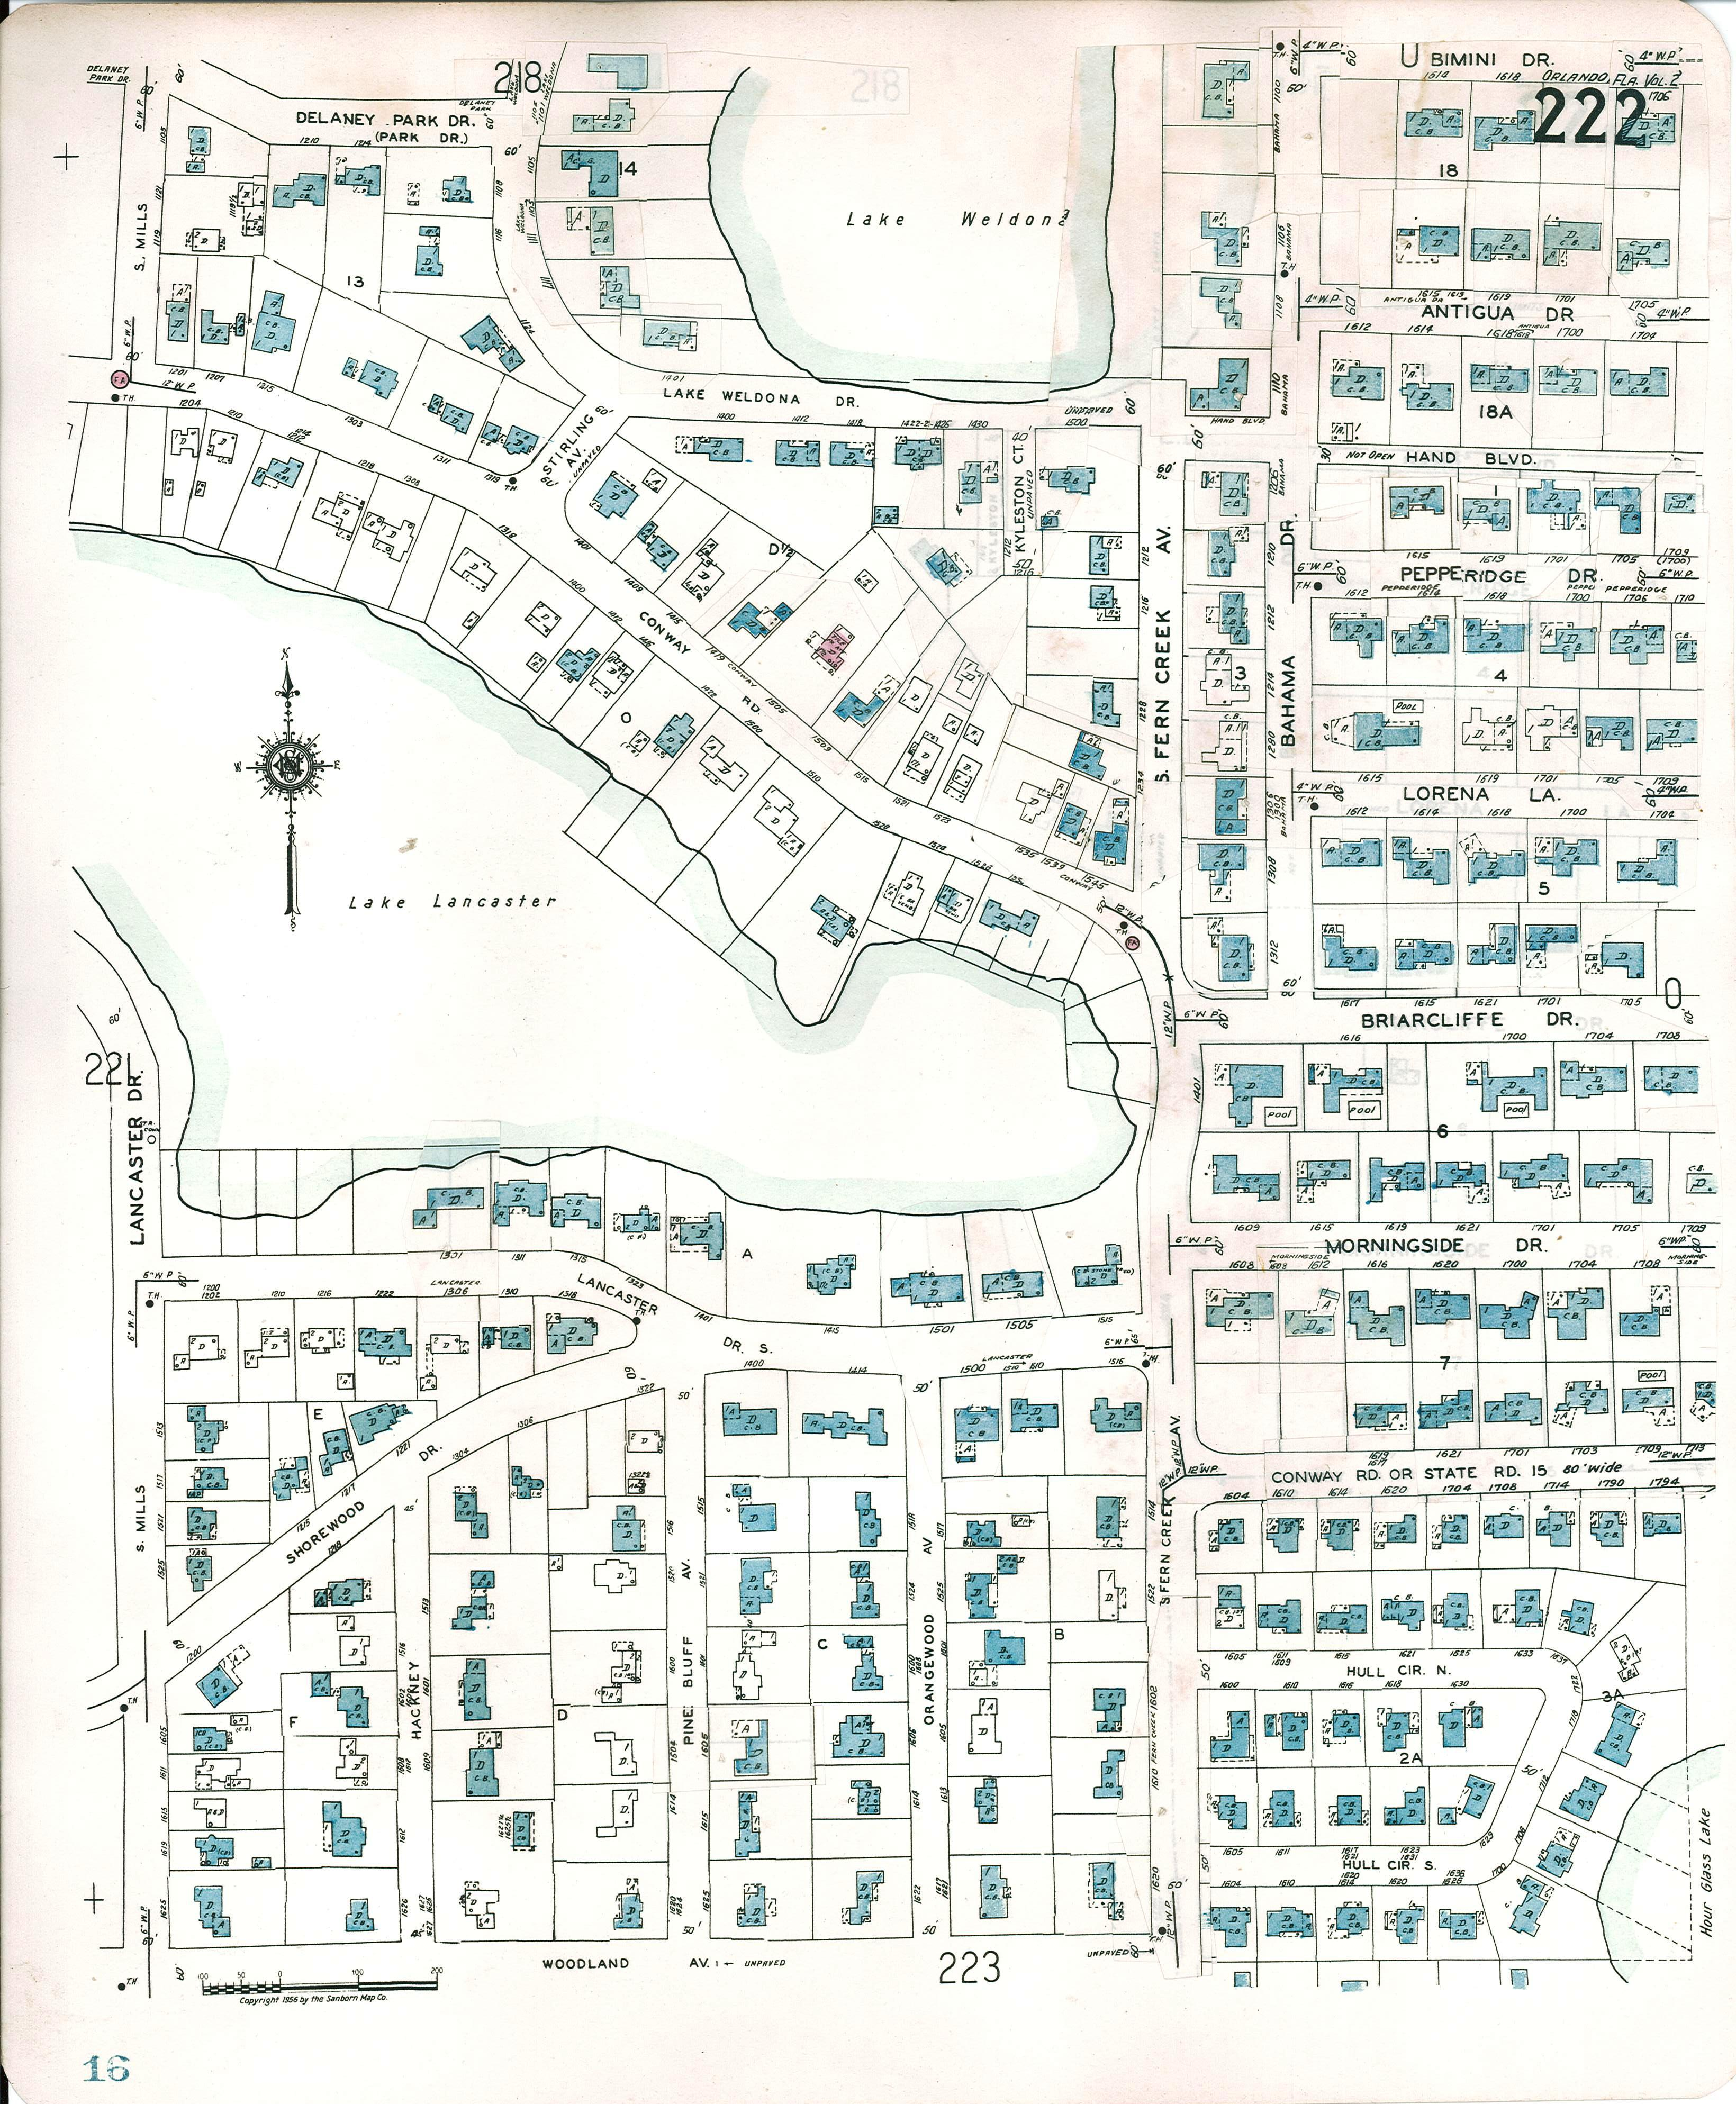 Sanborn Map provided by City